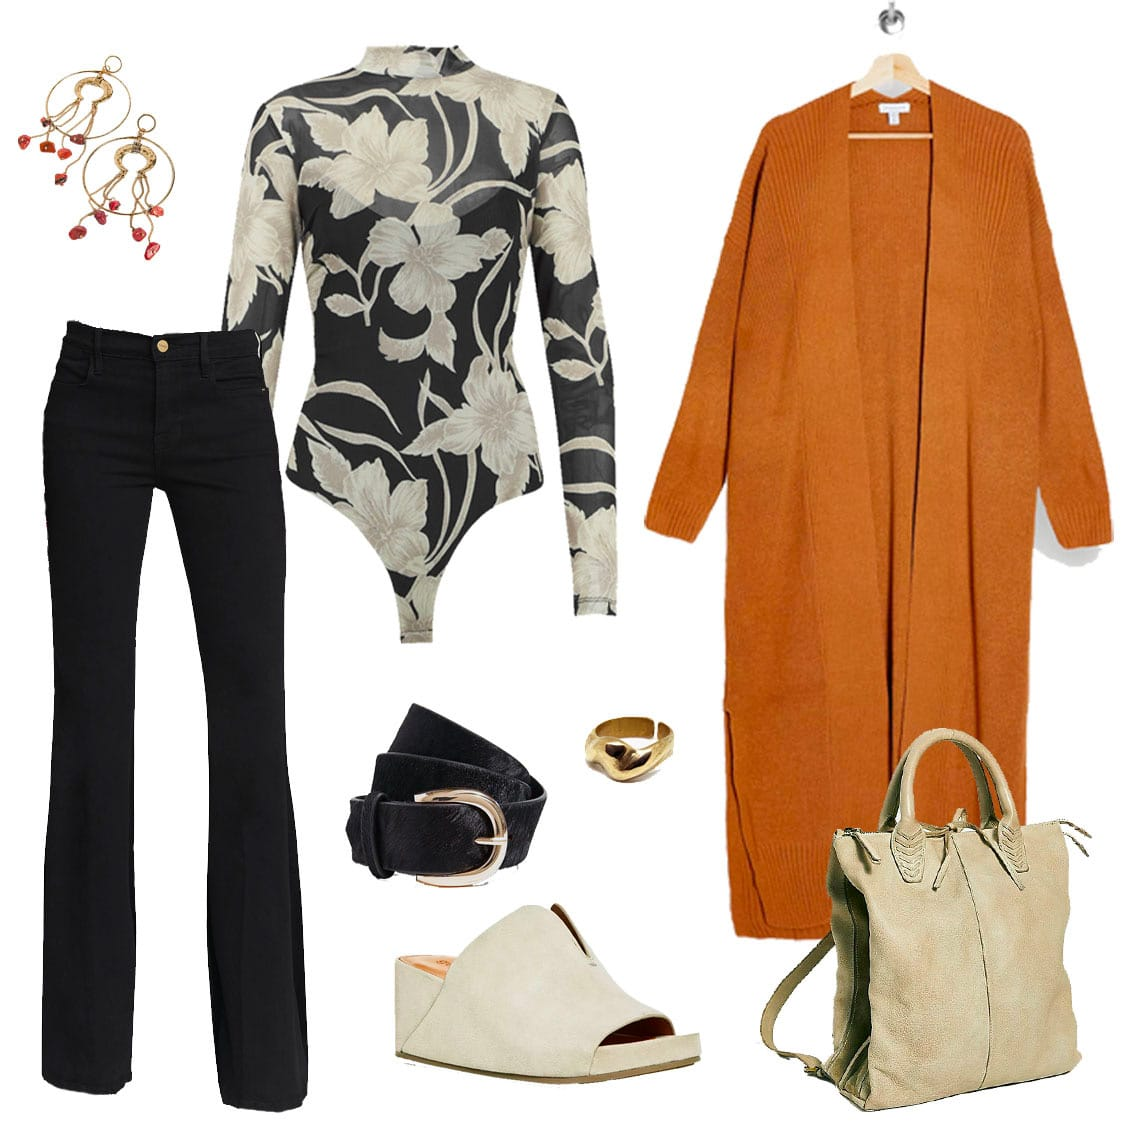 Fall Shopping Guide: How to Put Together Affordable Cute Fall Outfits